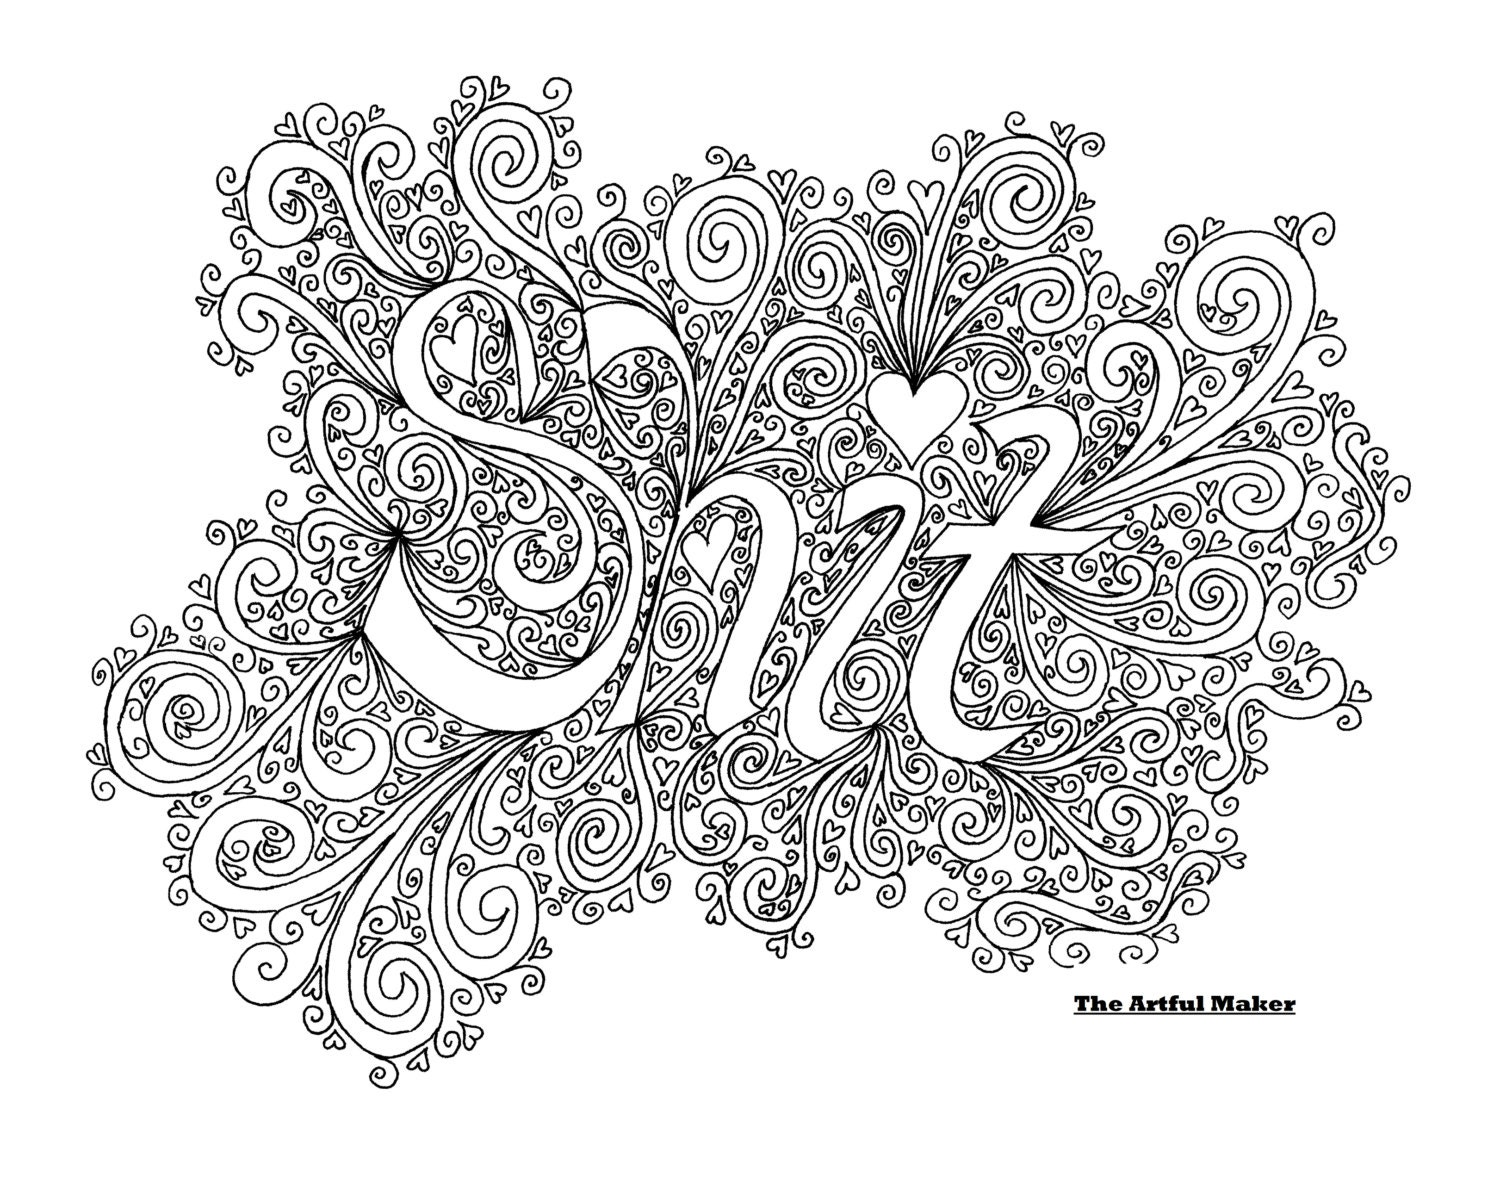 coloring page by the artful maker